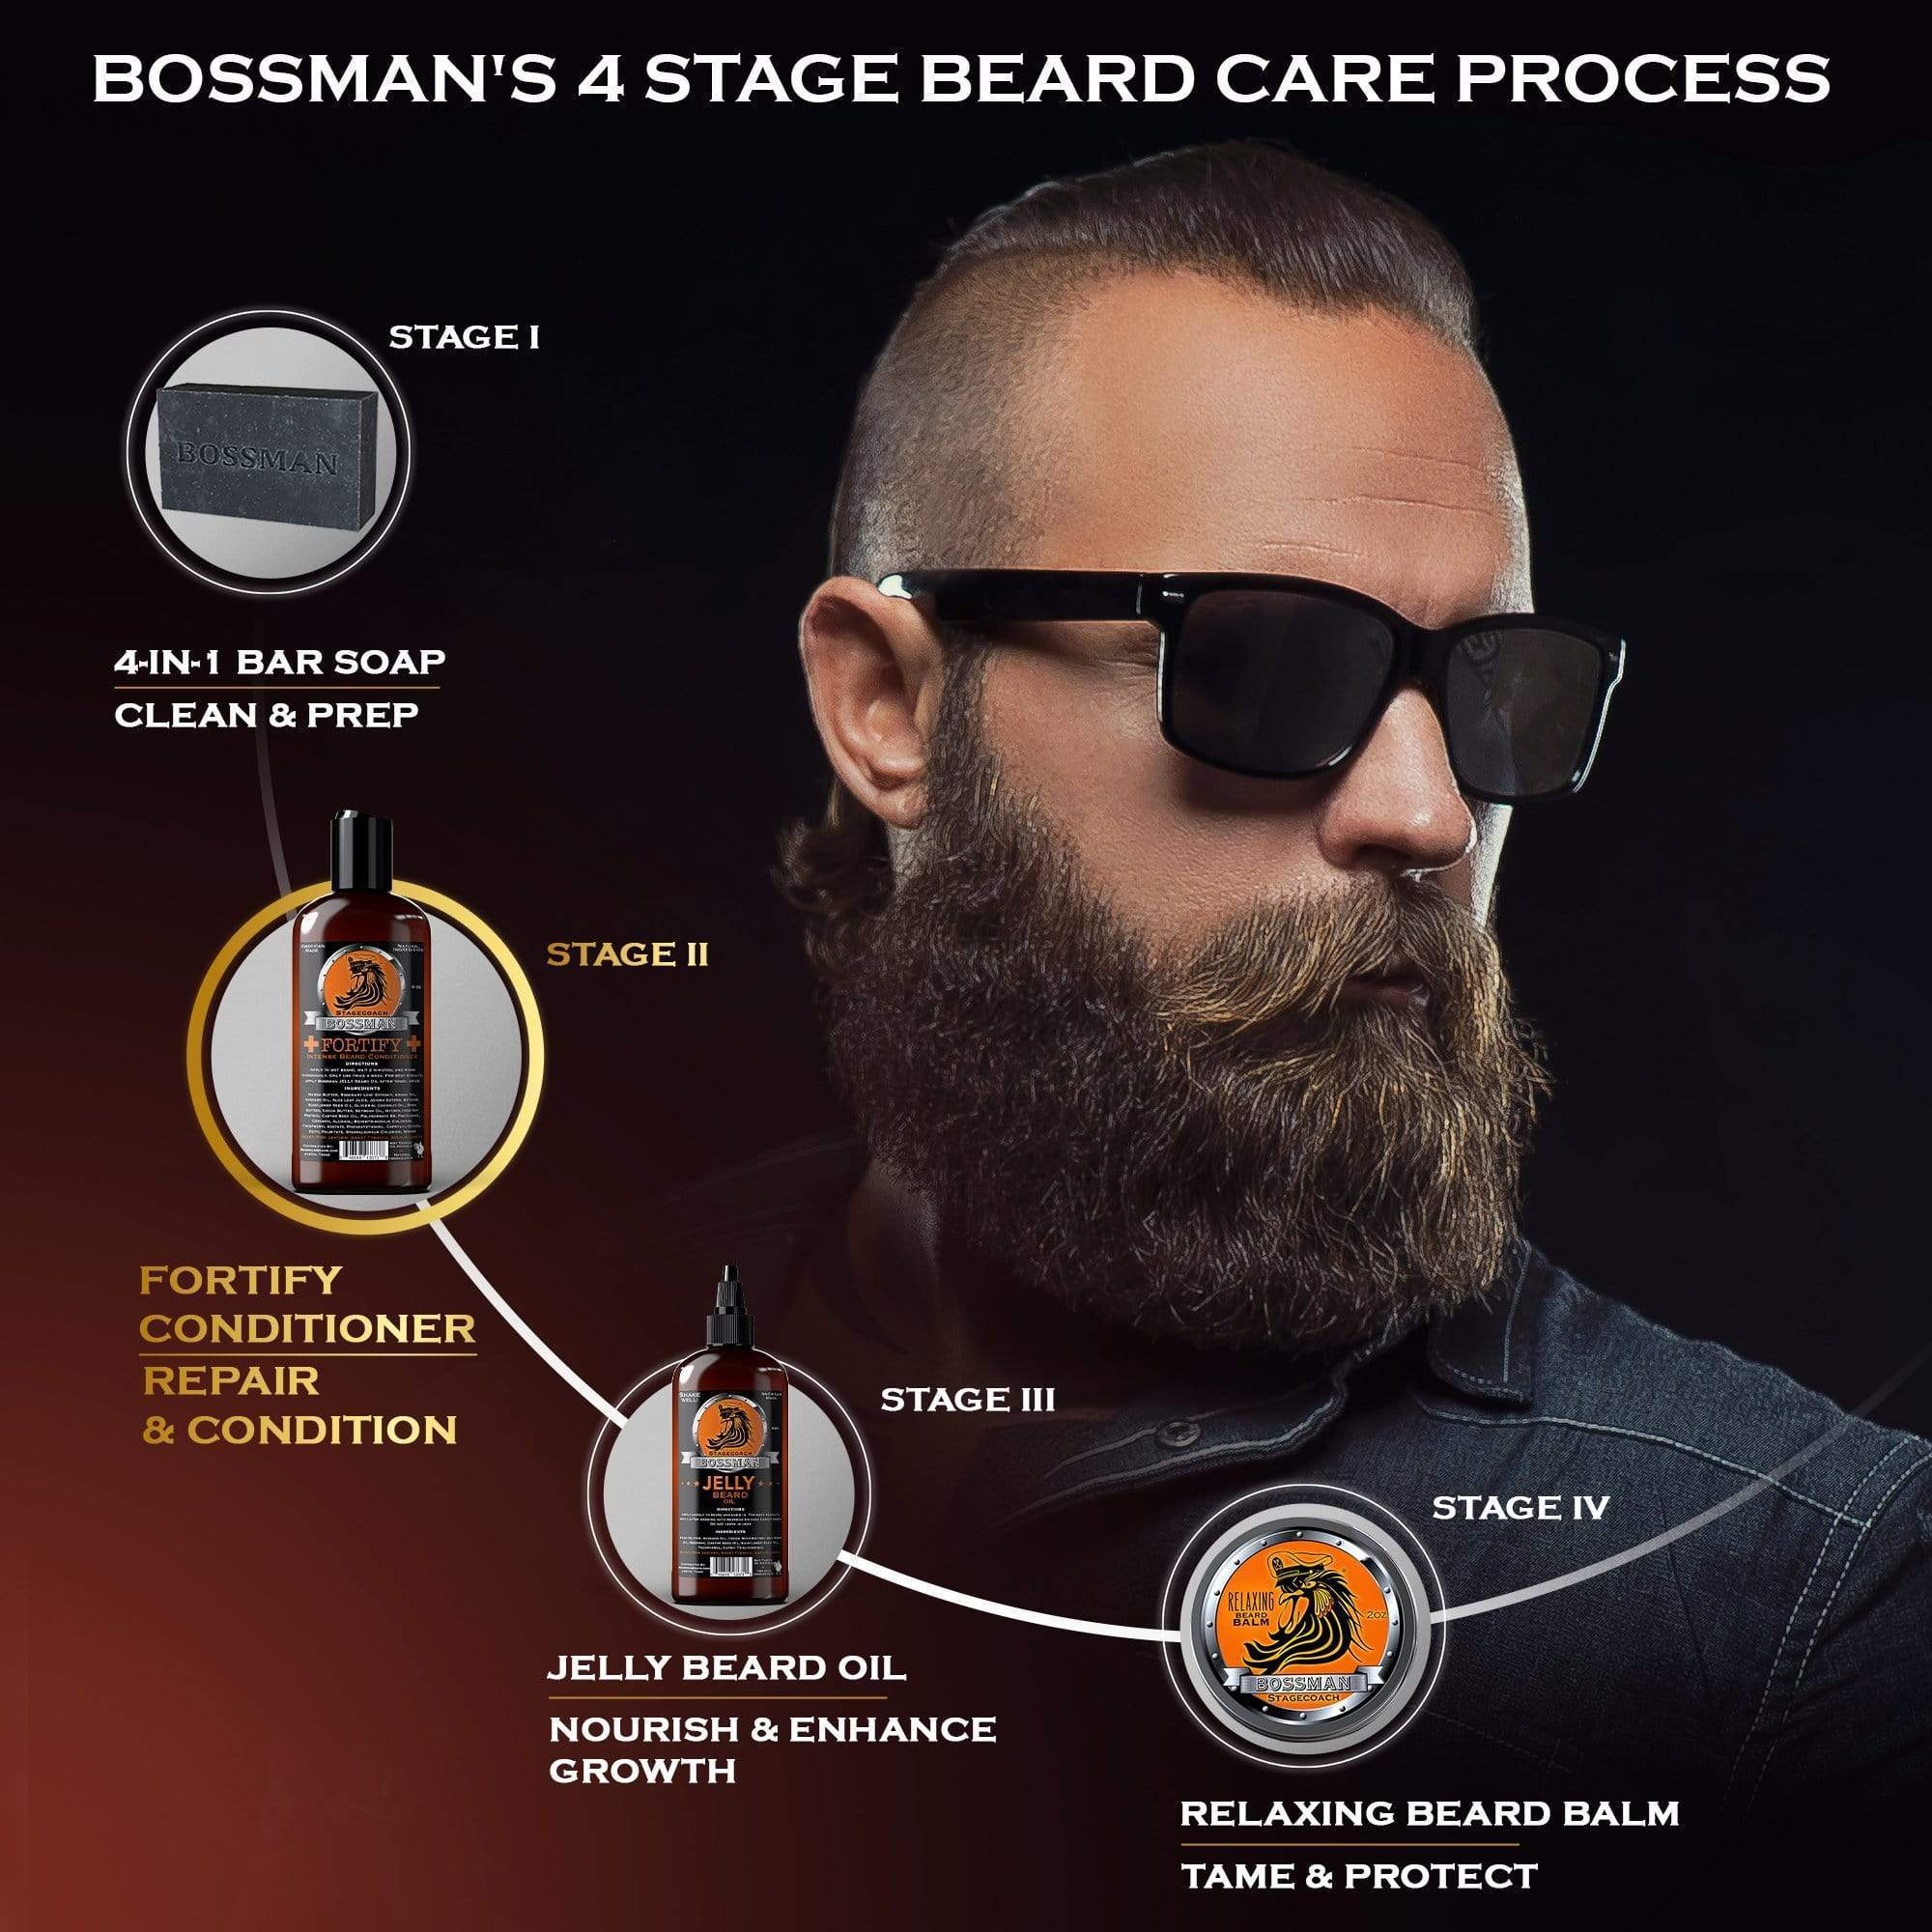 Fortify Beard Care Conditioner